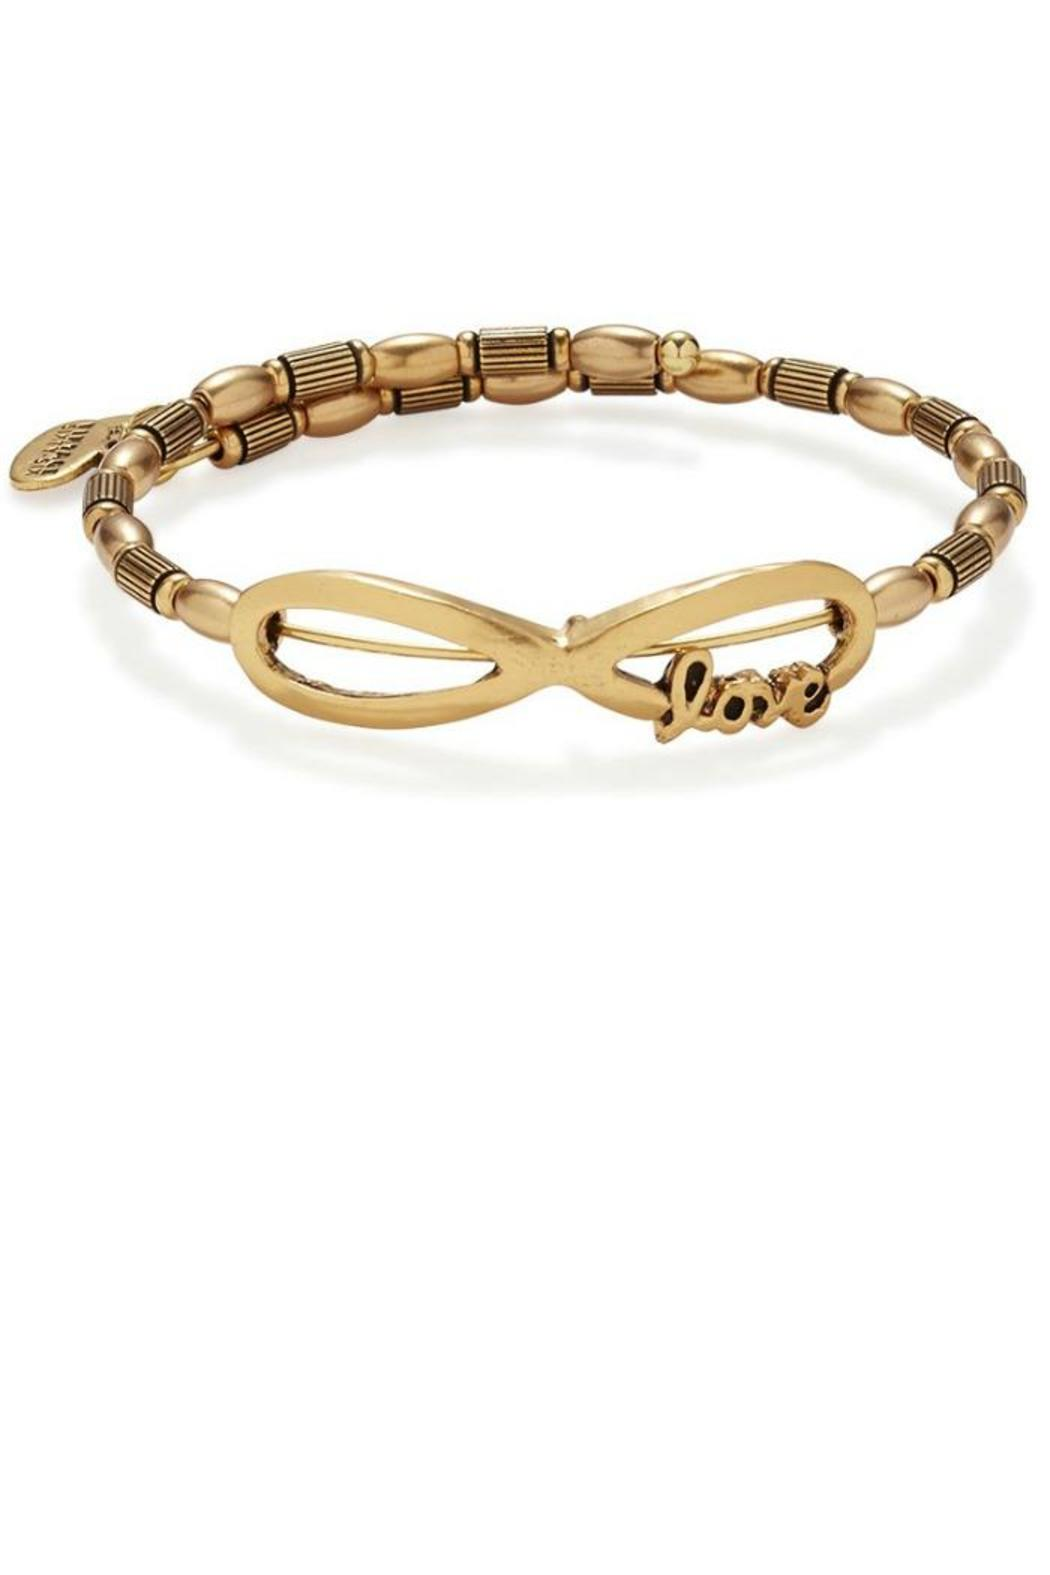 Alex And Ani Infinity Love Wrap Front Cropped Image